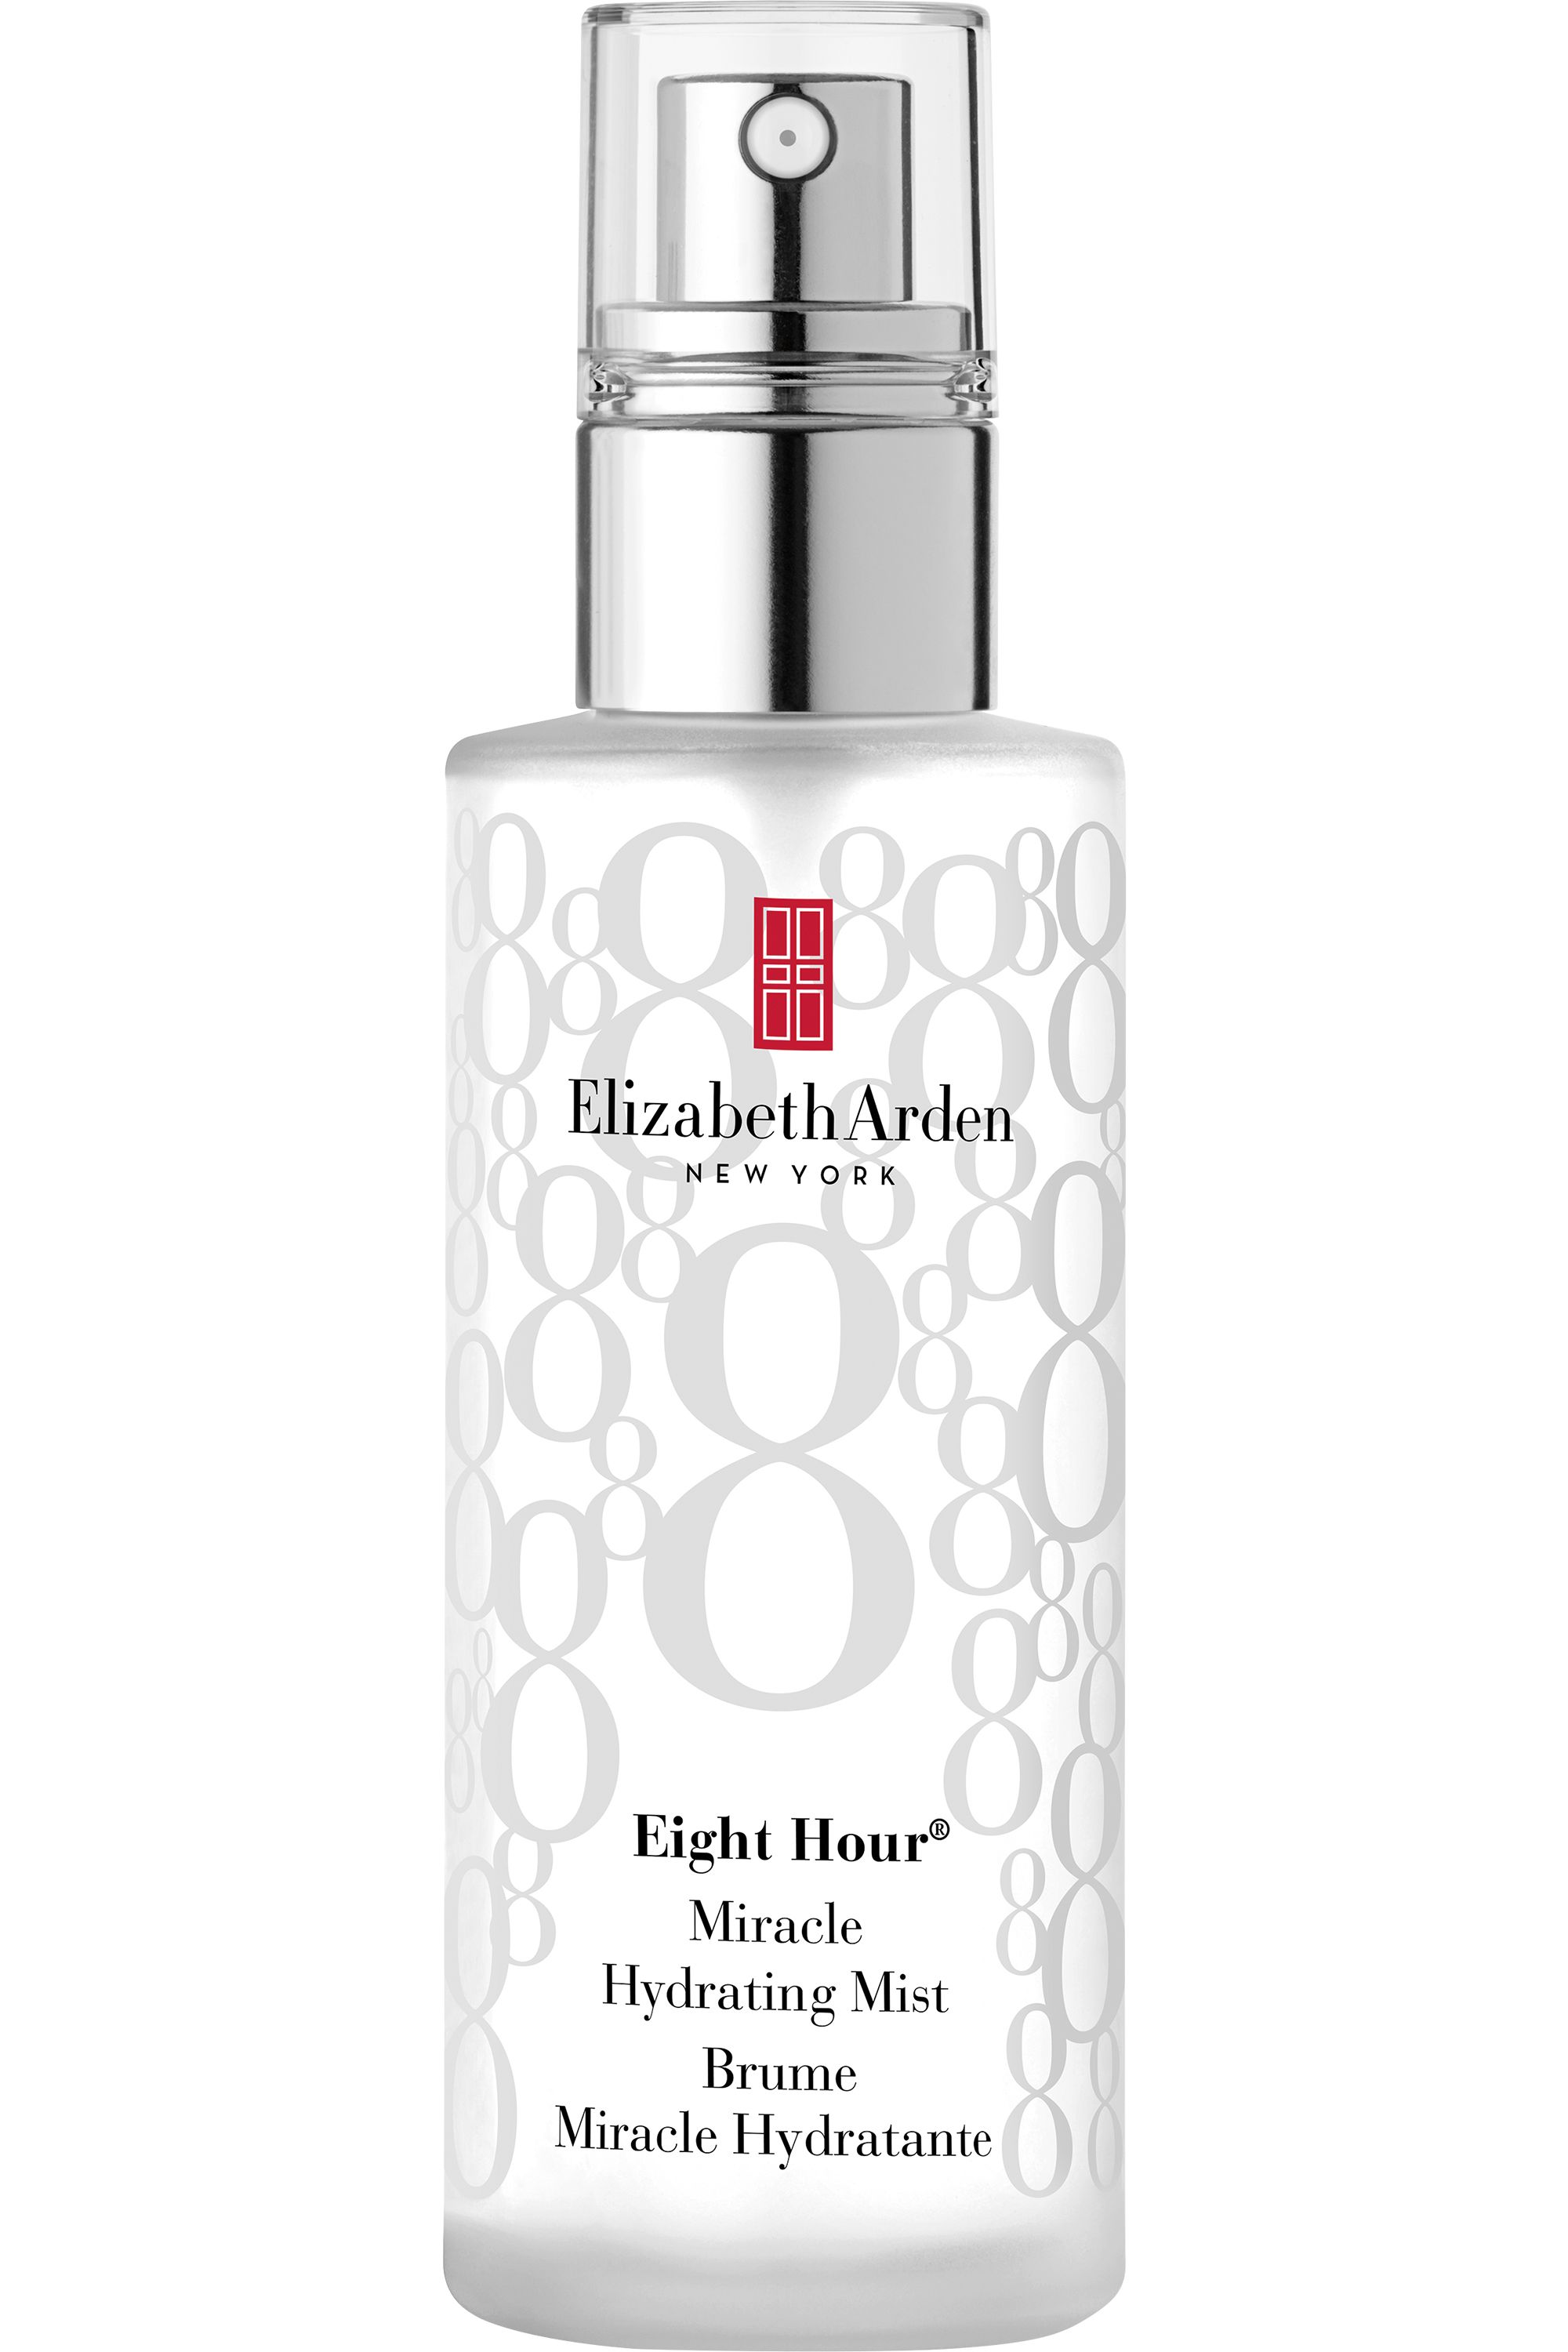 Blissim : Elizabeth Arden - Eight Hour Brume Miracle Hydratante - Eight Hour Brume Miracle Hydratante